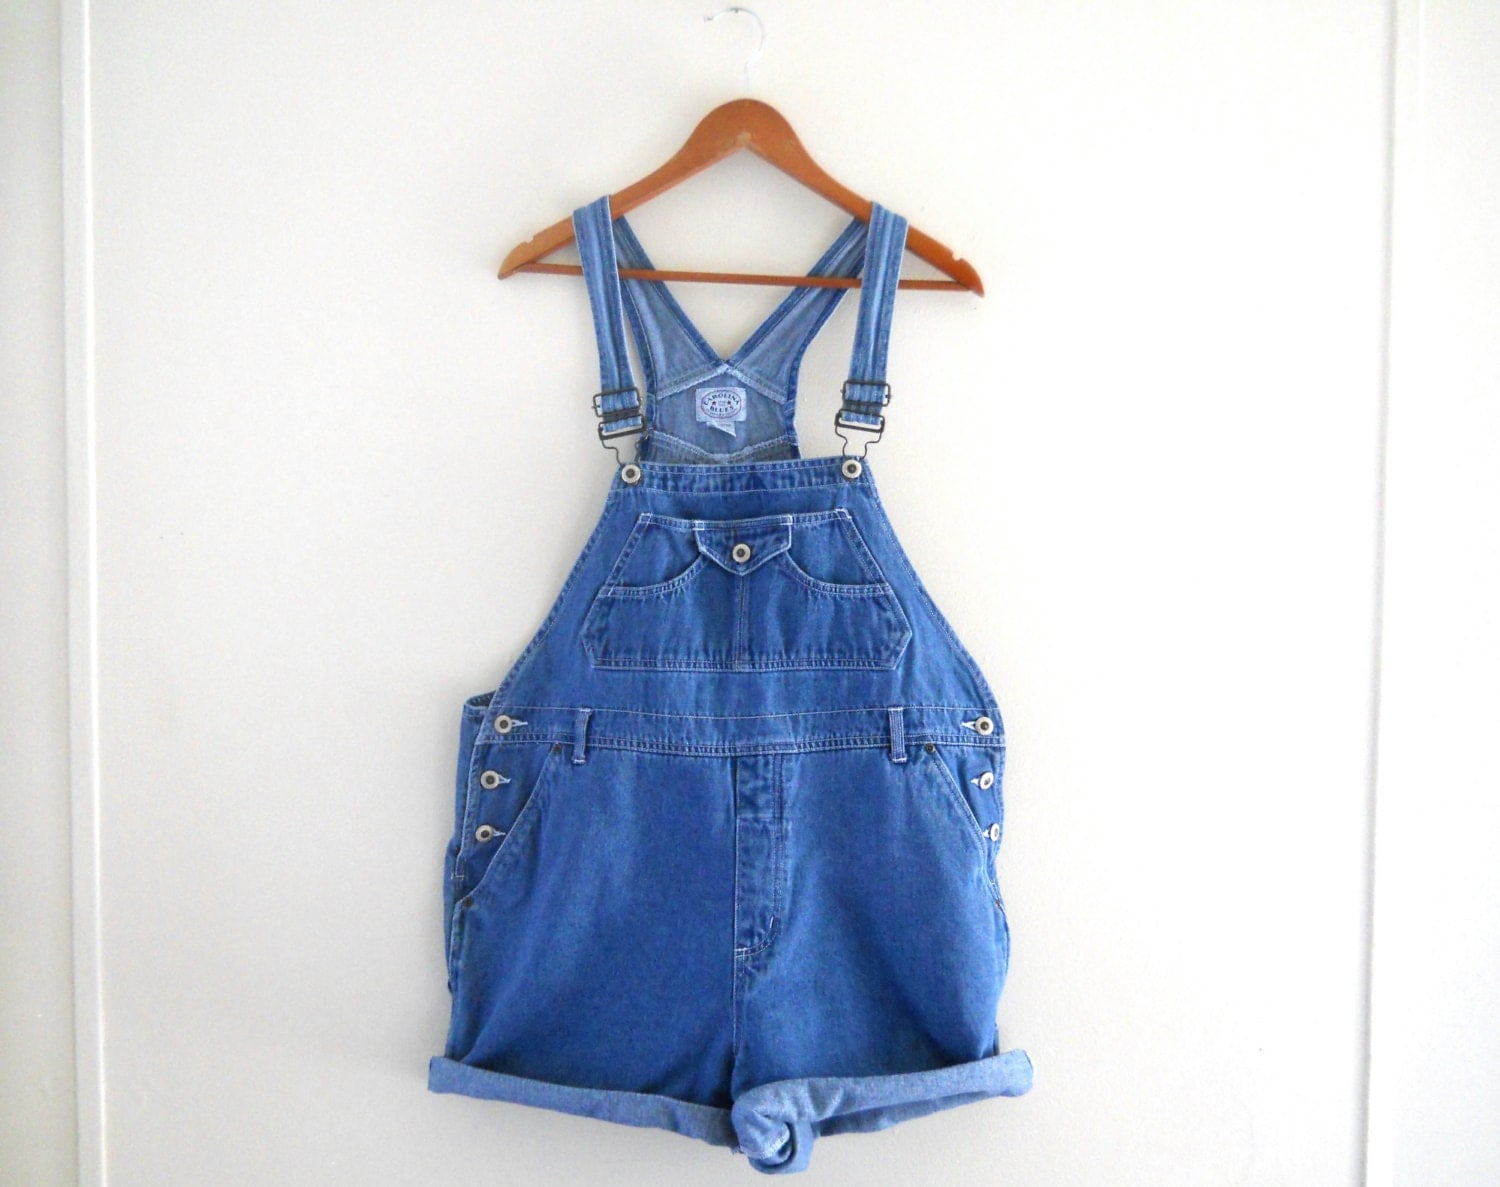 Shop for plus size denim overalls online at Target. Free shipping on purchases over $35 and save 5% every day with your Target REDcard.